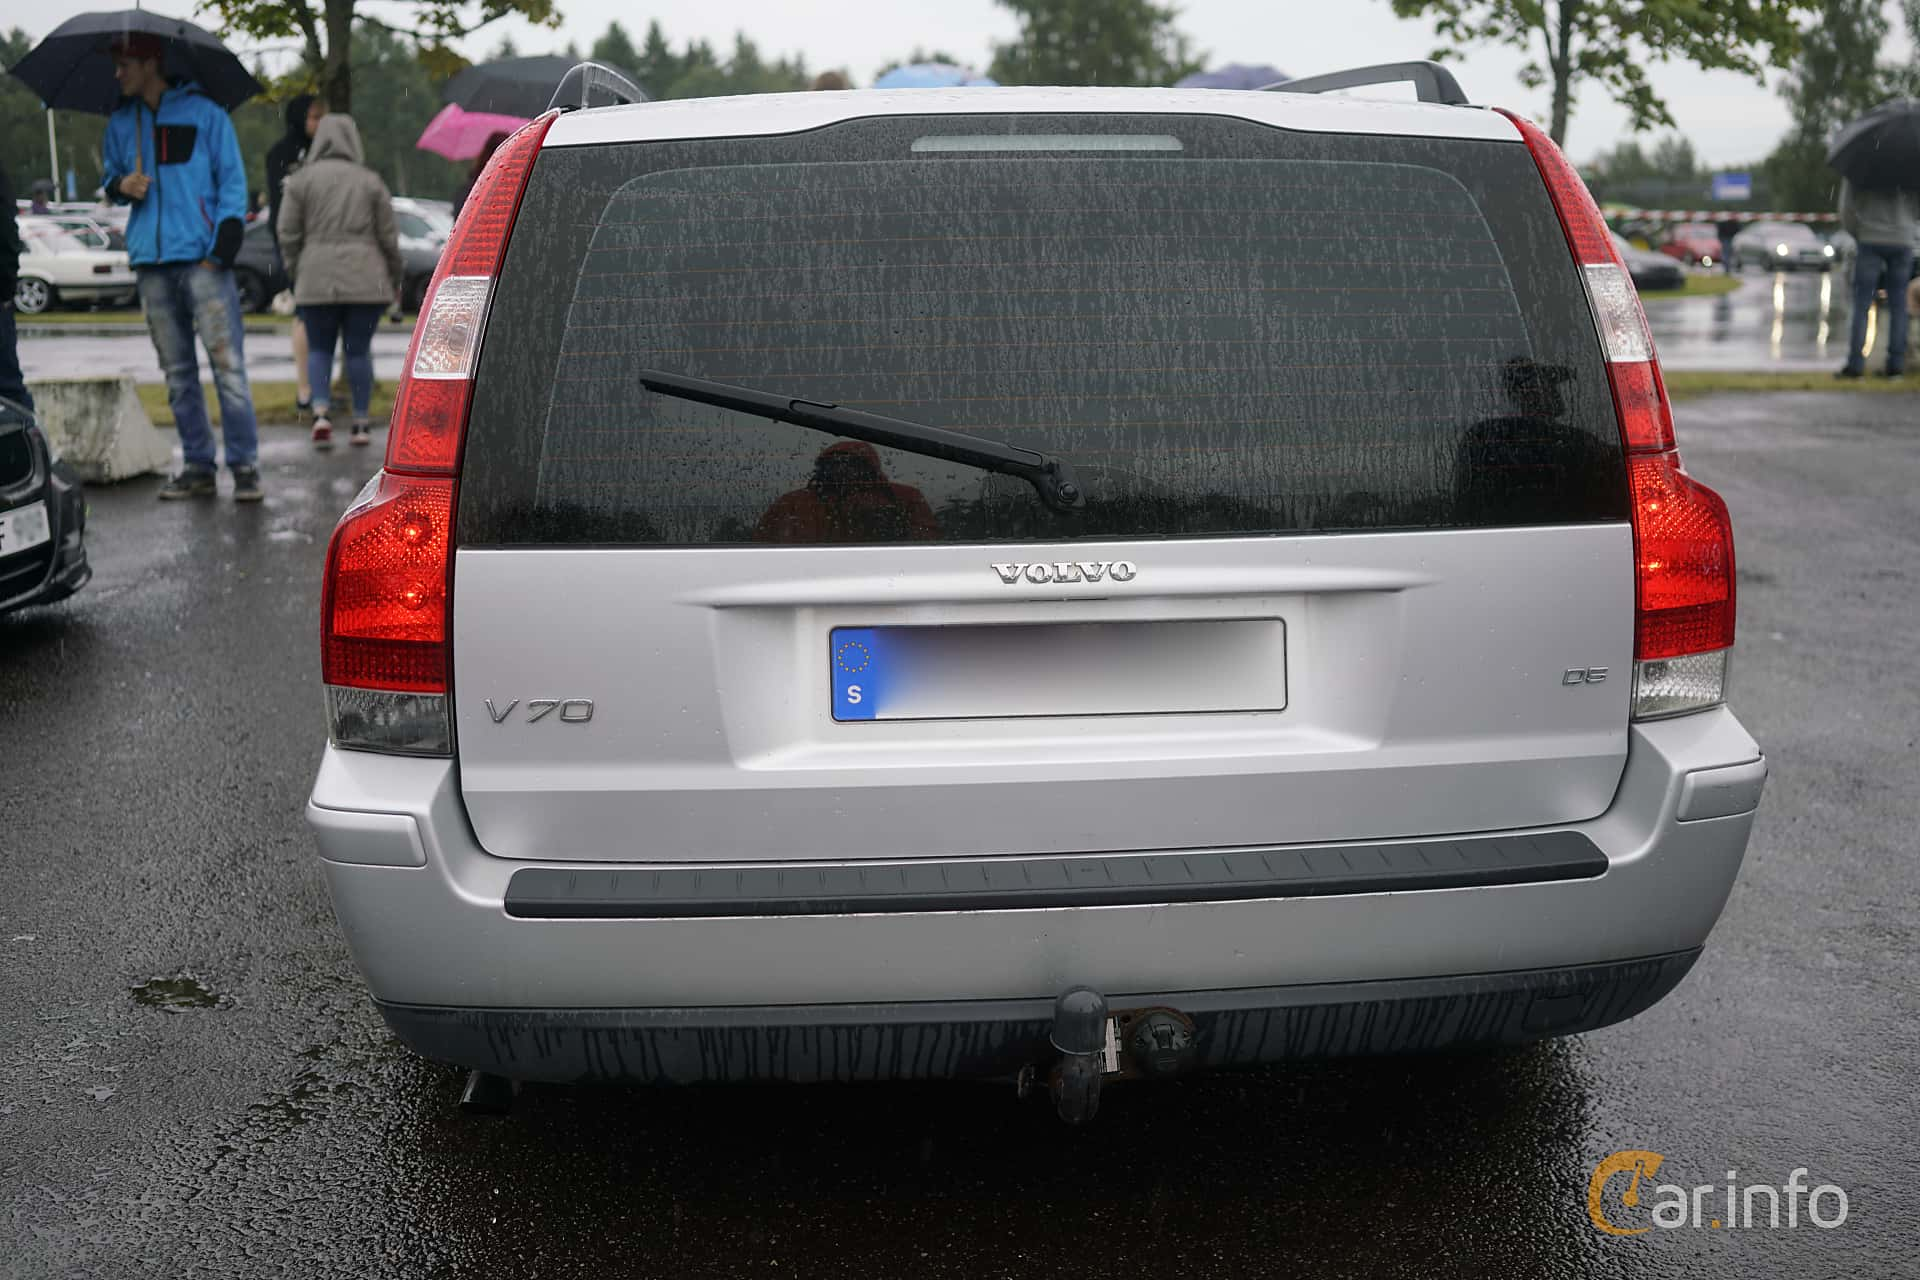 2 images of Volvo V70 D5 Manual, 163hp, 2005 by marcusliedholm